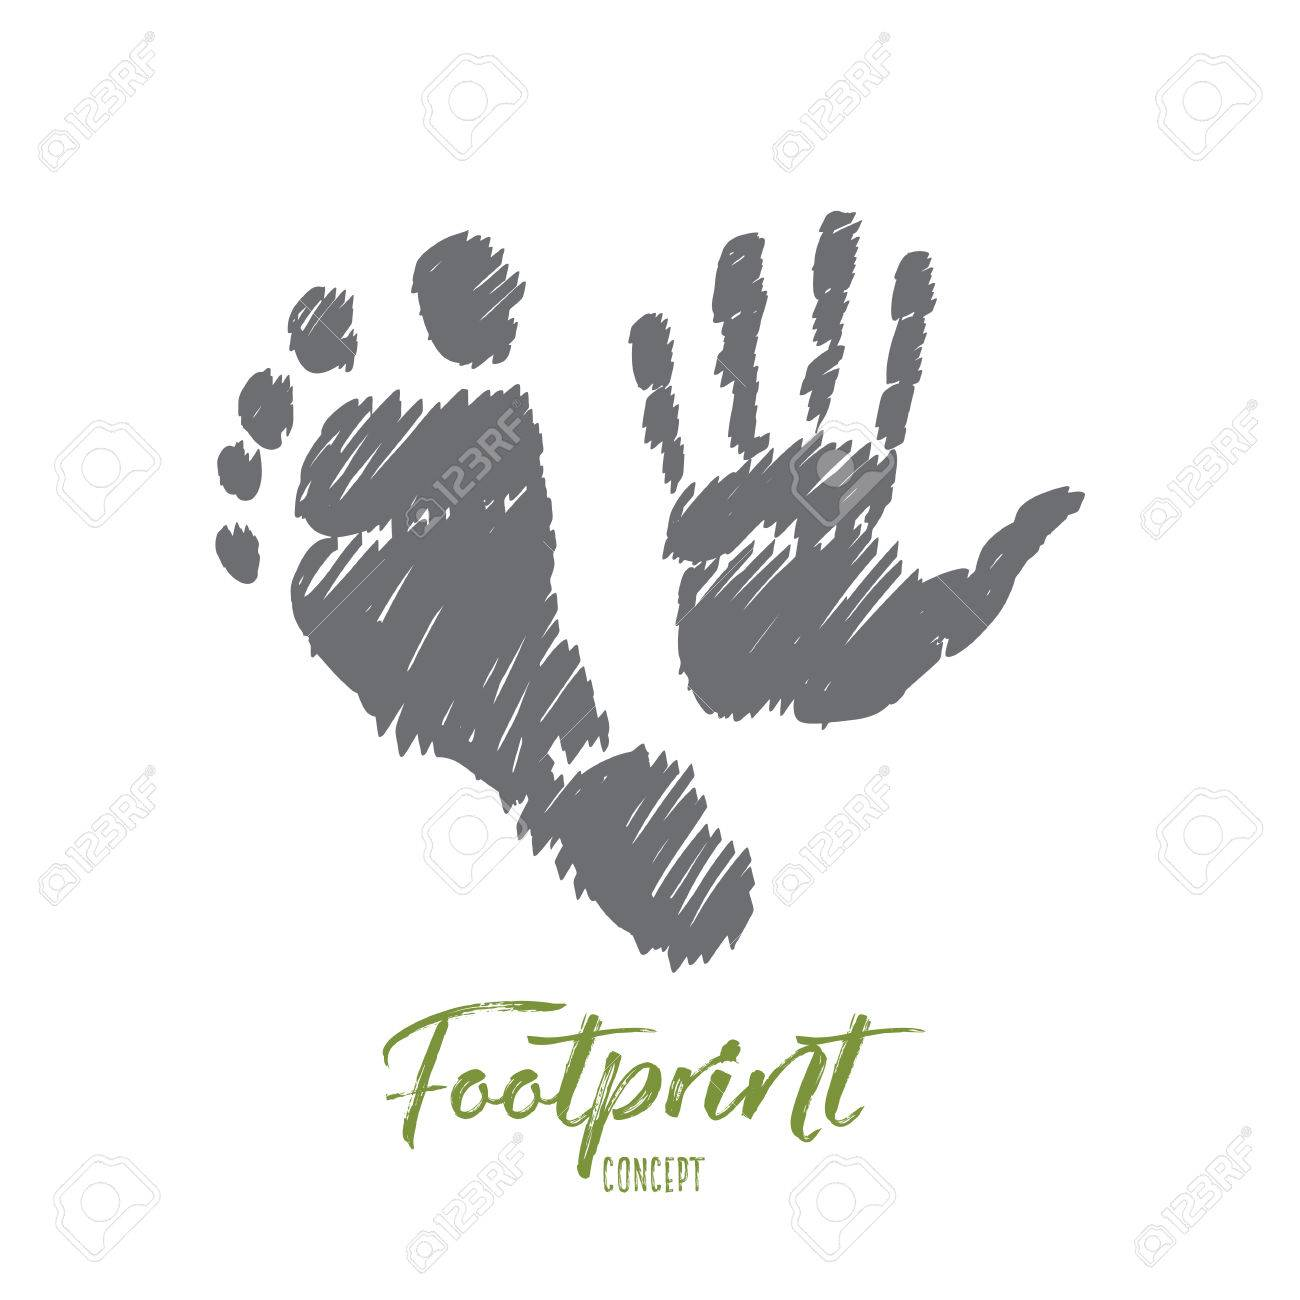 Vector Hand Drawn Footprint Concept Sketch With Prints Of Human ...